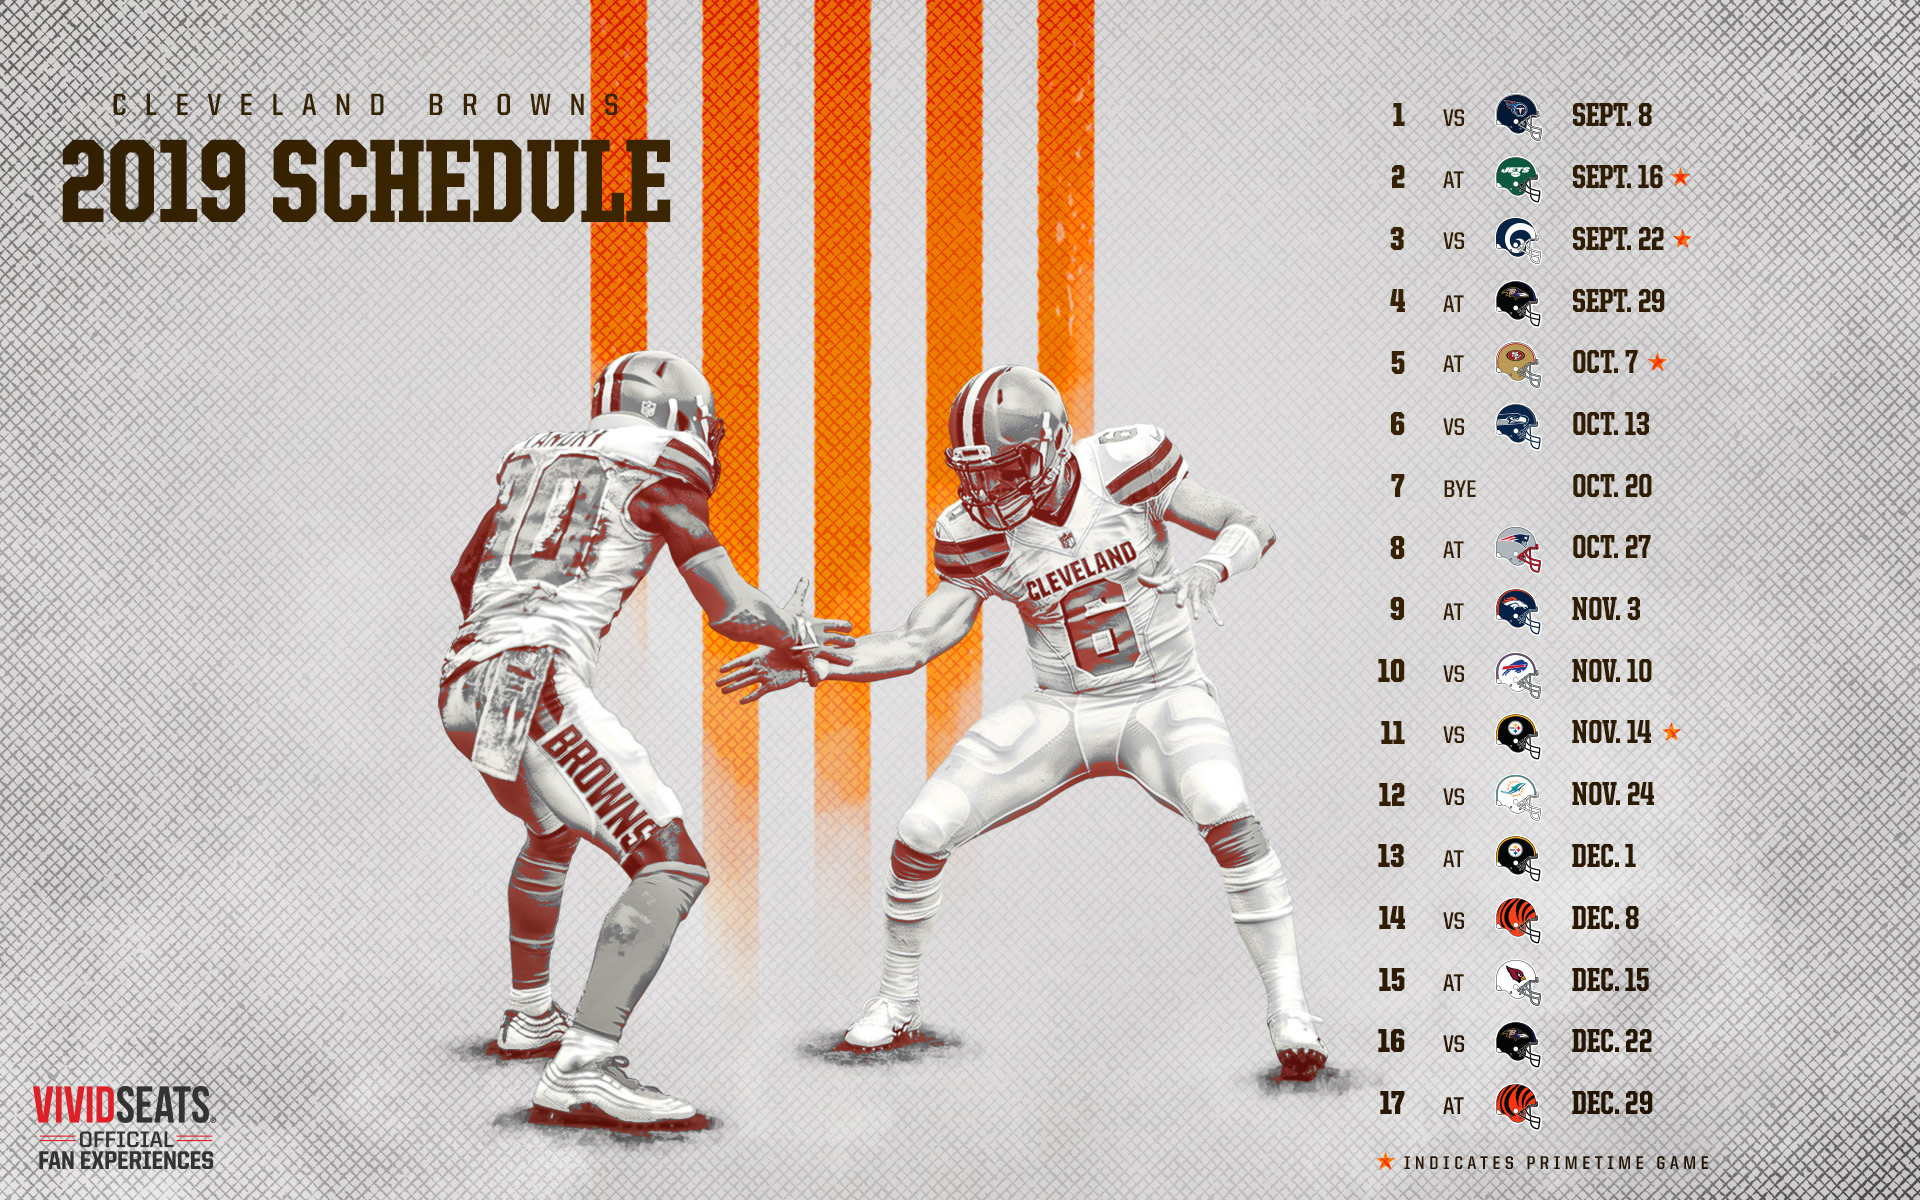 photo regarding Denver Broncos Schedule Printable identified as Browns Timetable Downloads Cleveland Browns